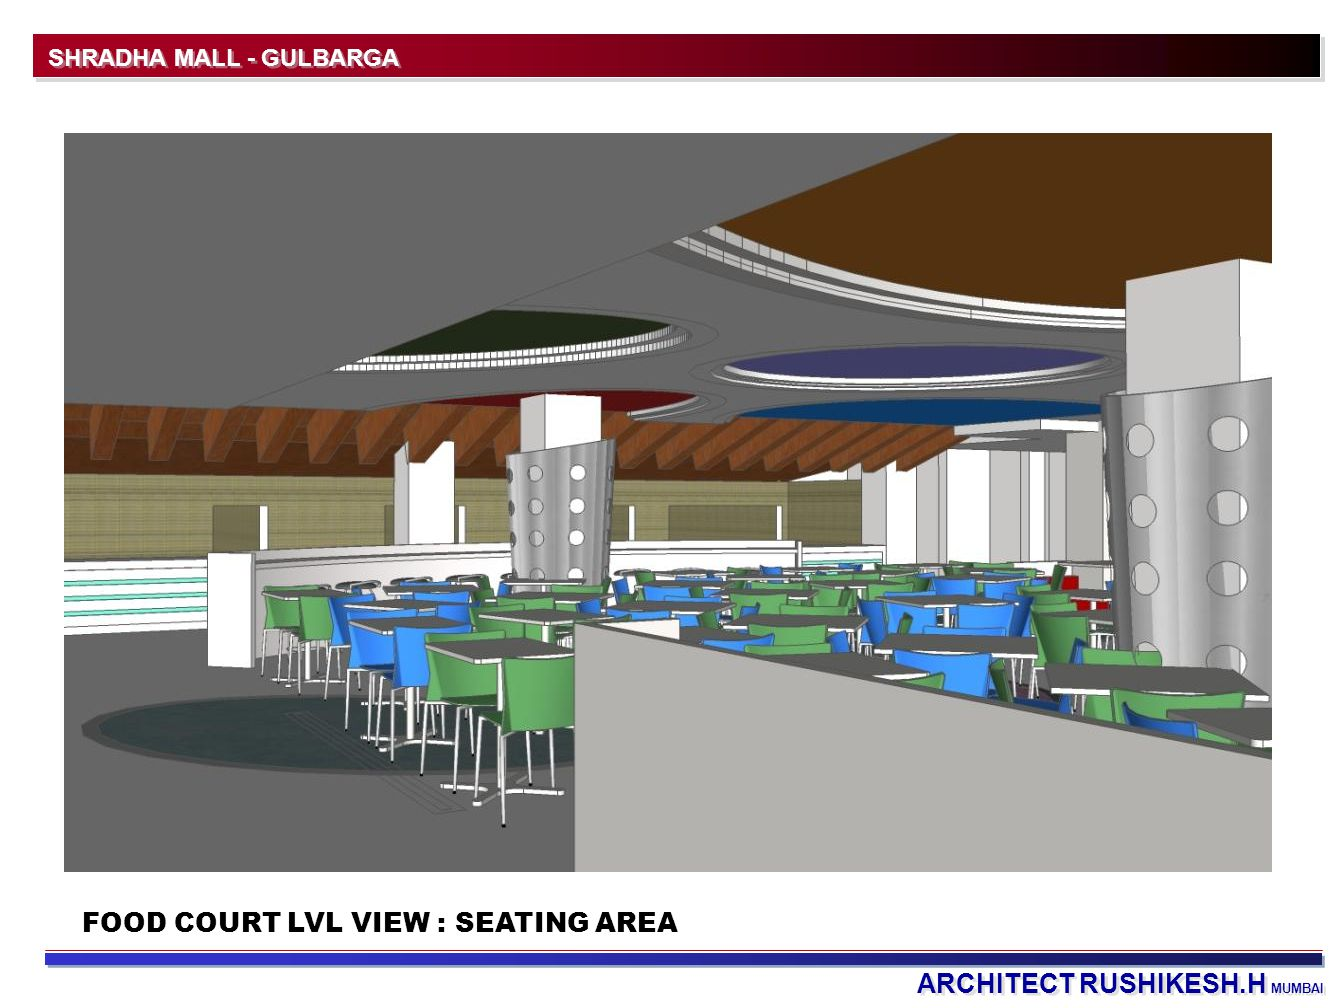 FOOD COURT LVL VIEW : SEATING AREA